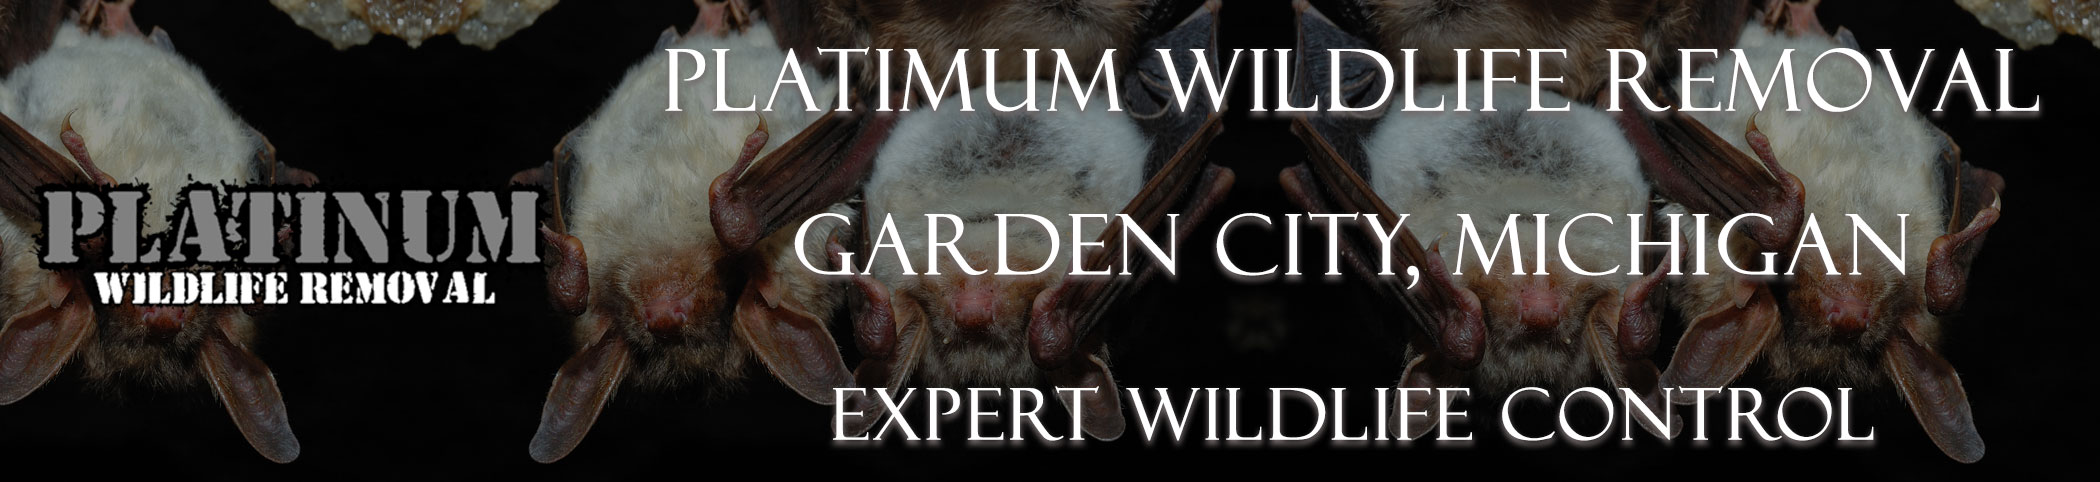 Garden-City-Platinum-Wildlife-Removal-michgan